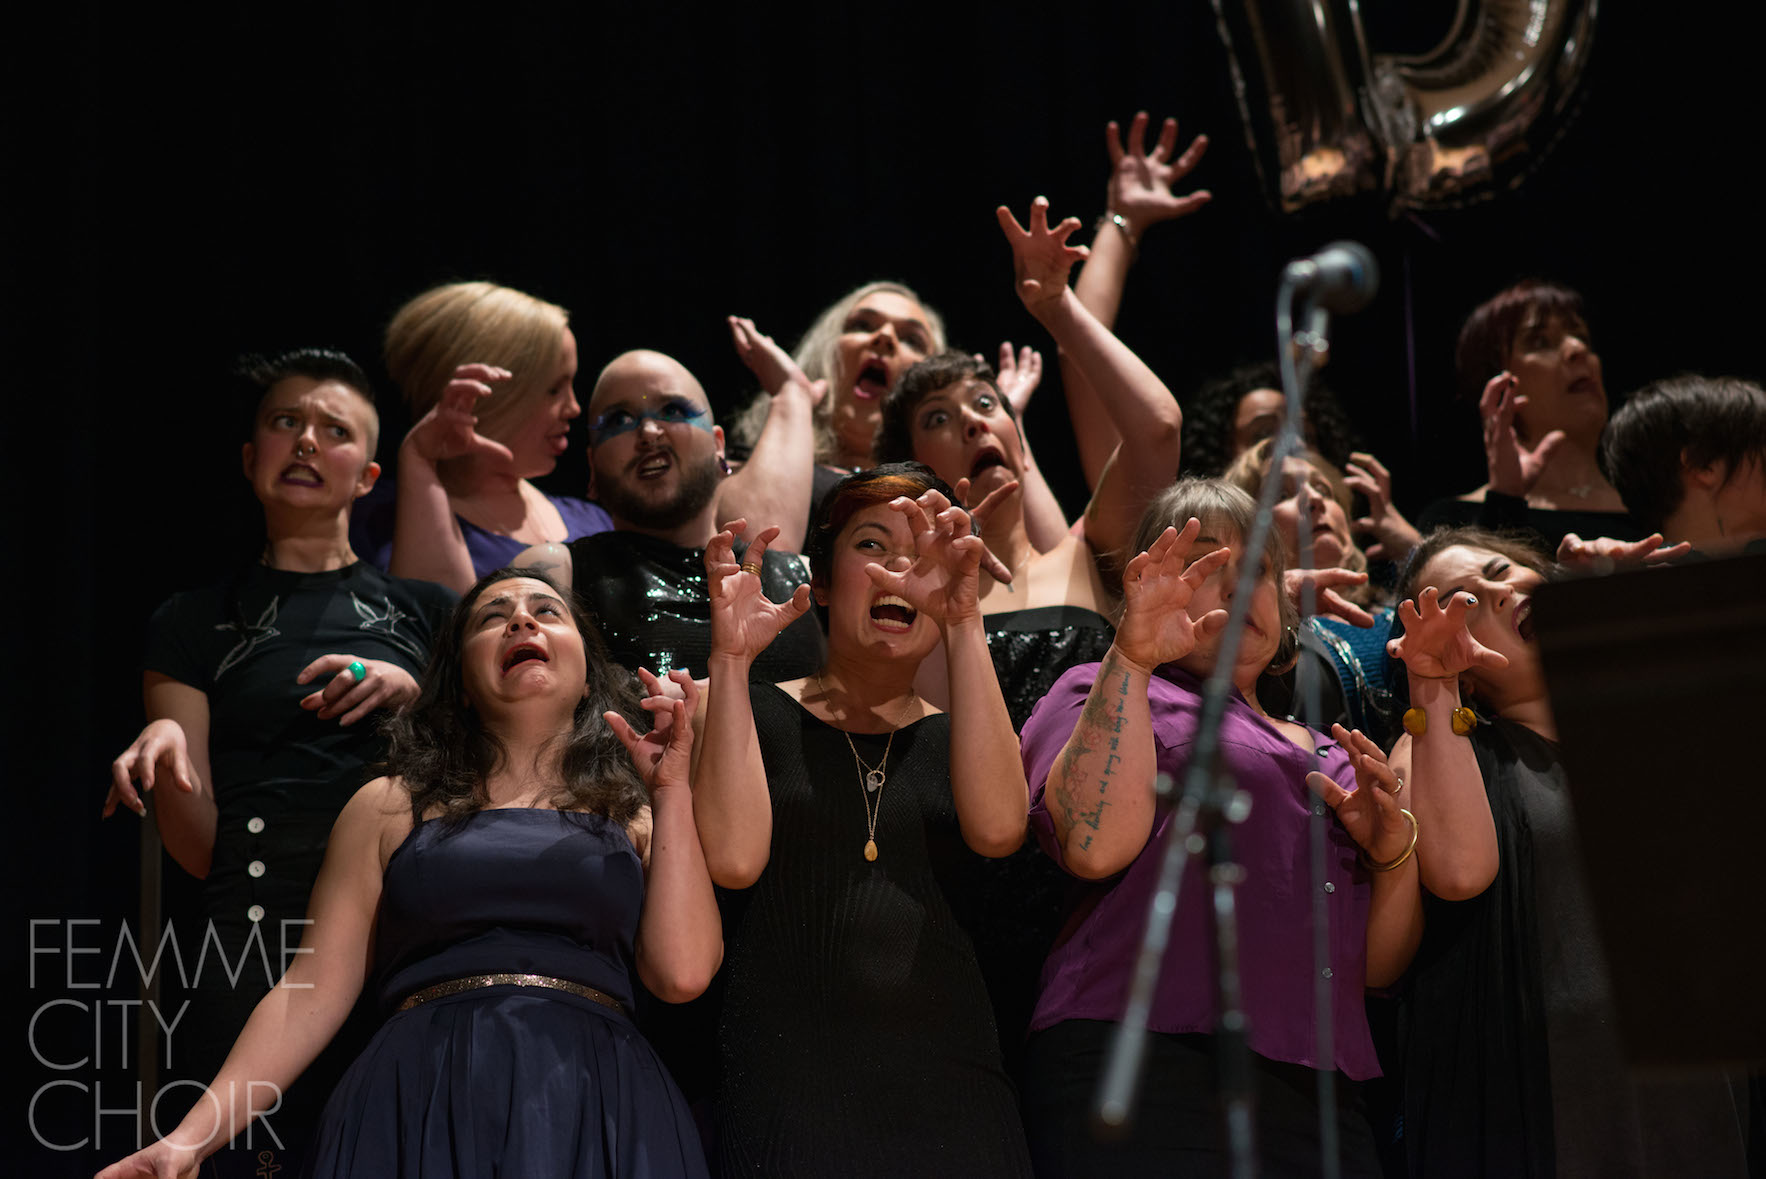 Femme City Choir in Divas! at Vancouver Community College Auditorium, Vancouver BC 2015 Photo by RDM Photography and Art